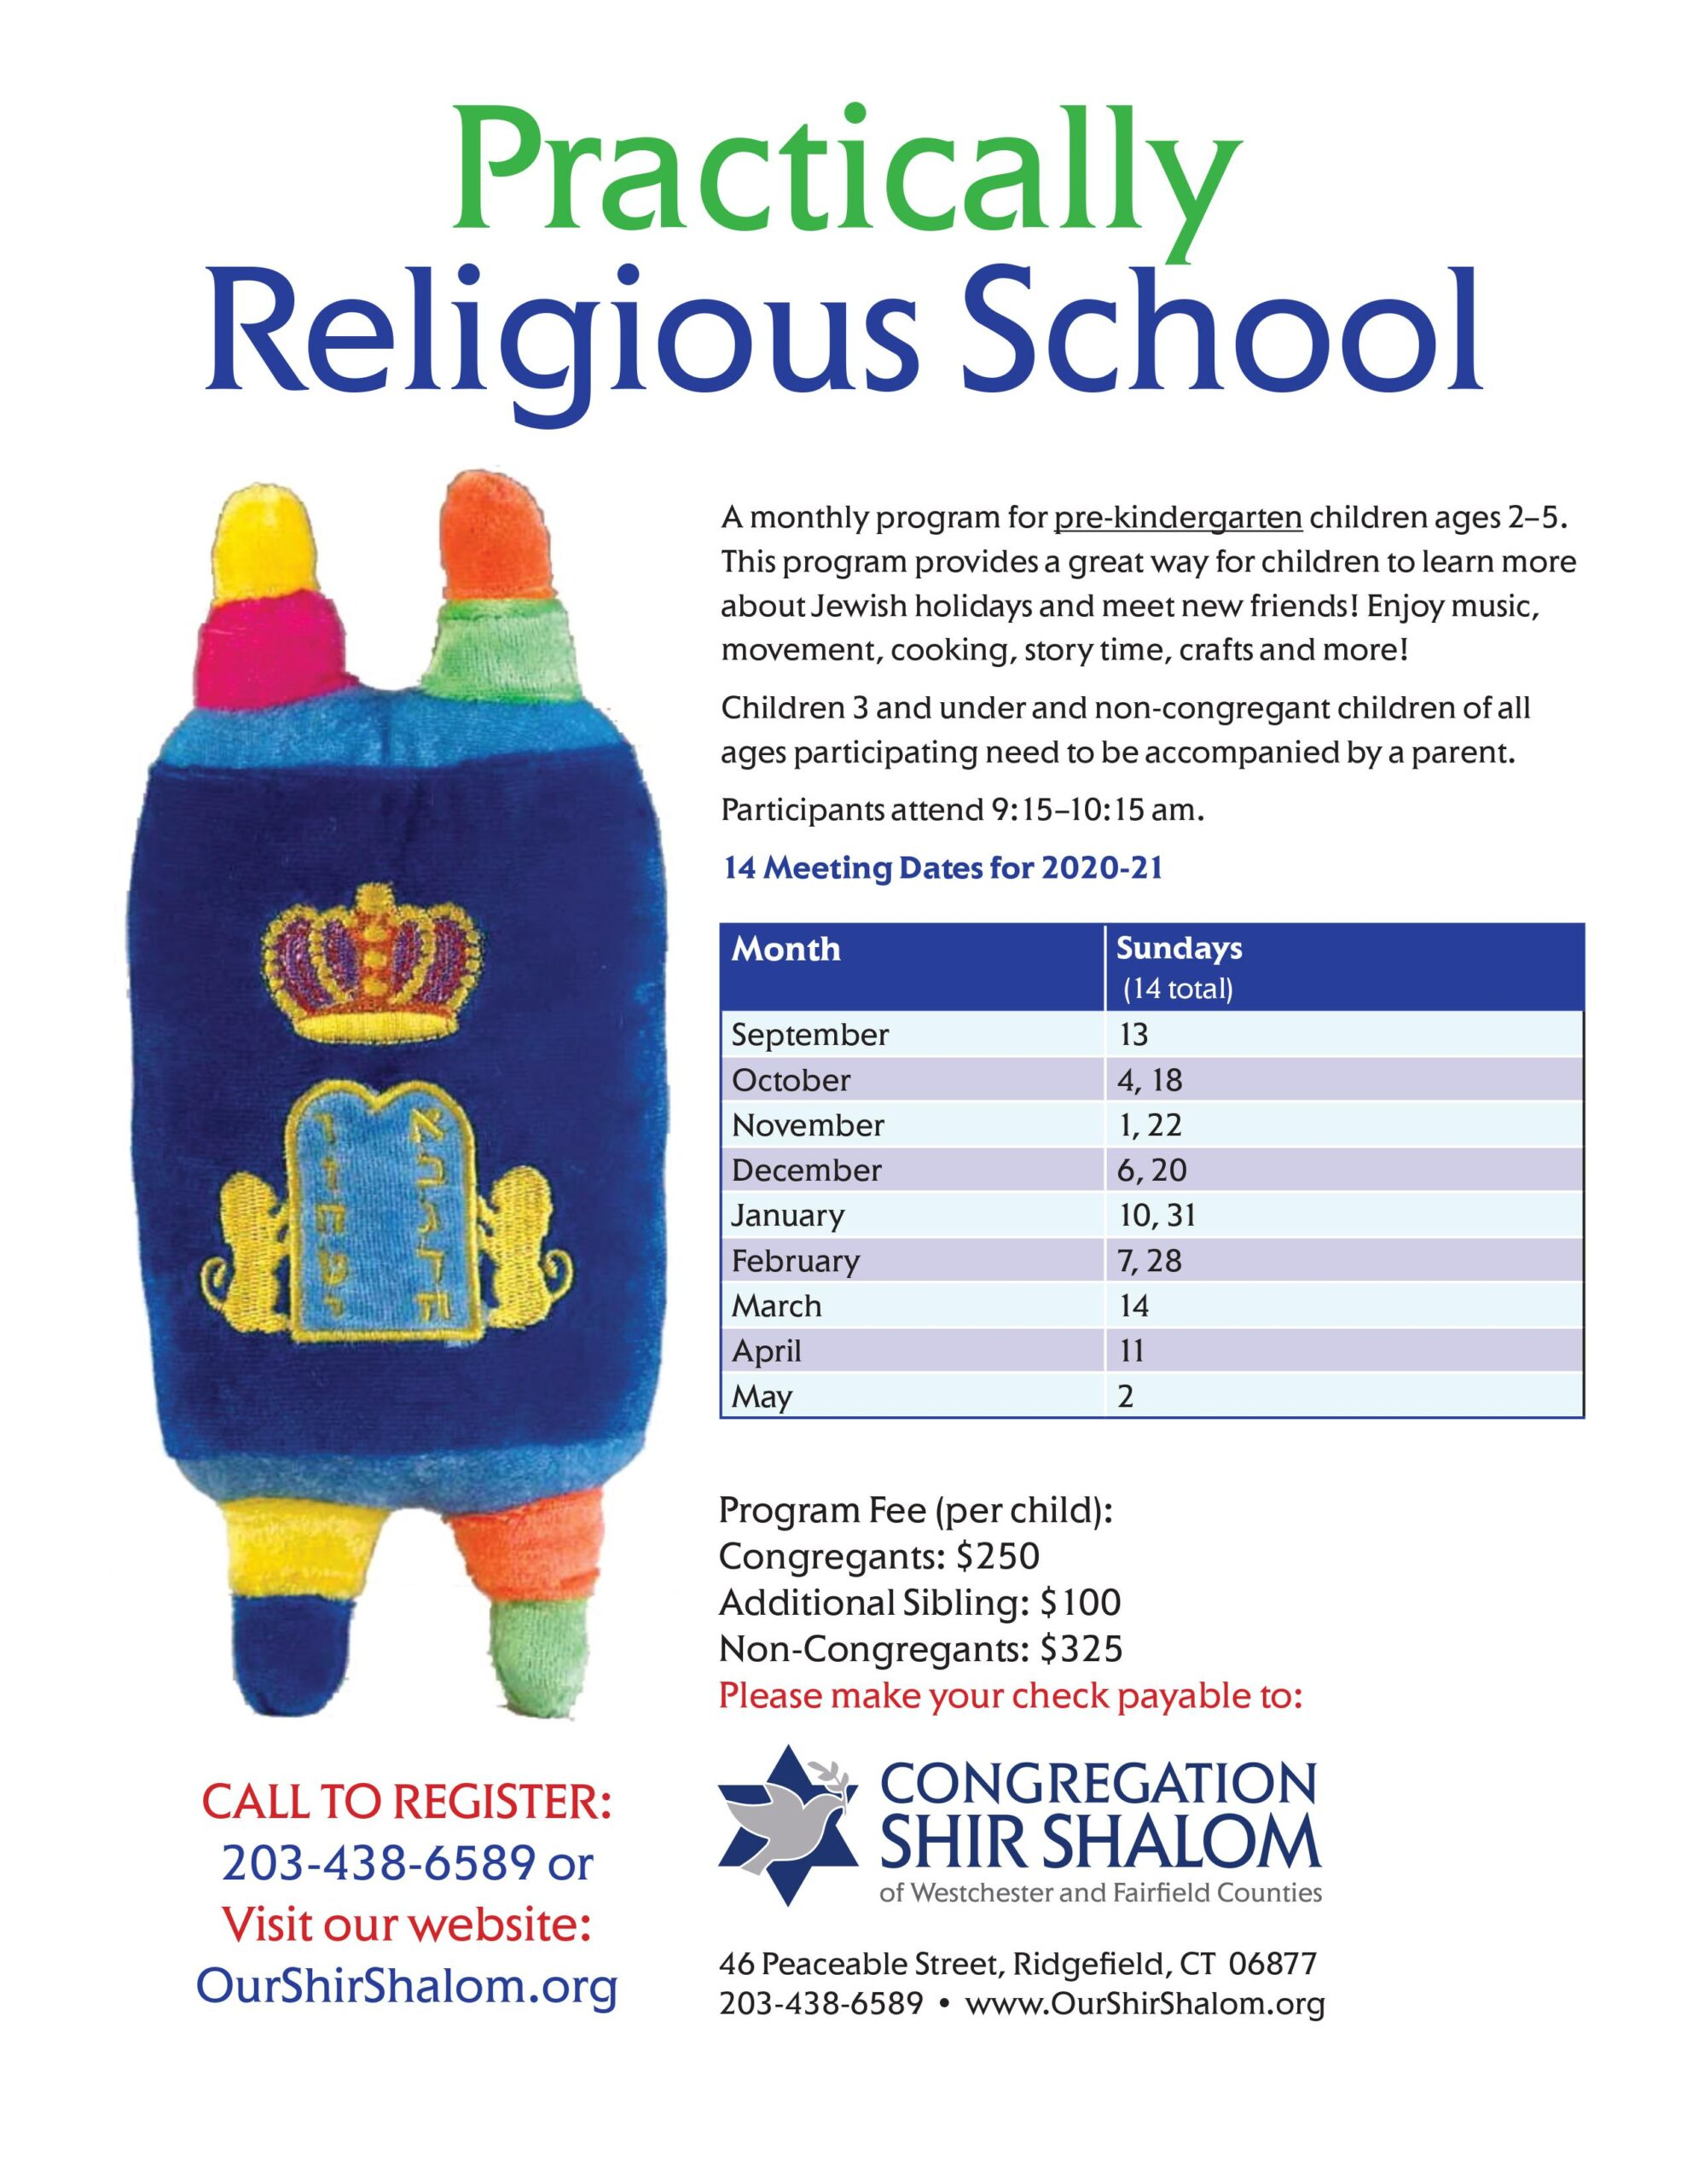 Practically Religious School: a monthly program for pre-kindergarten children age 2-5.